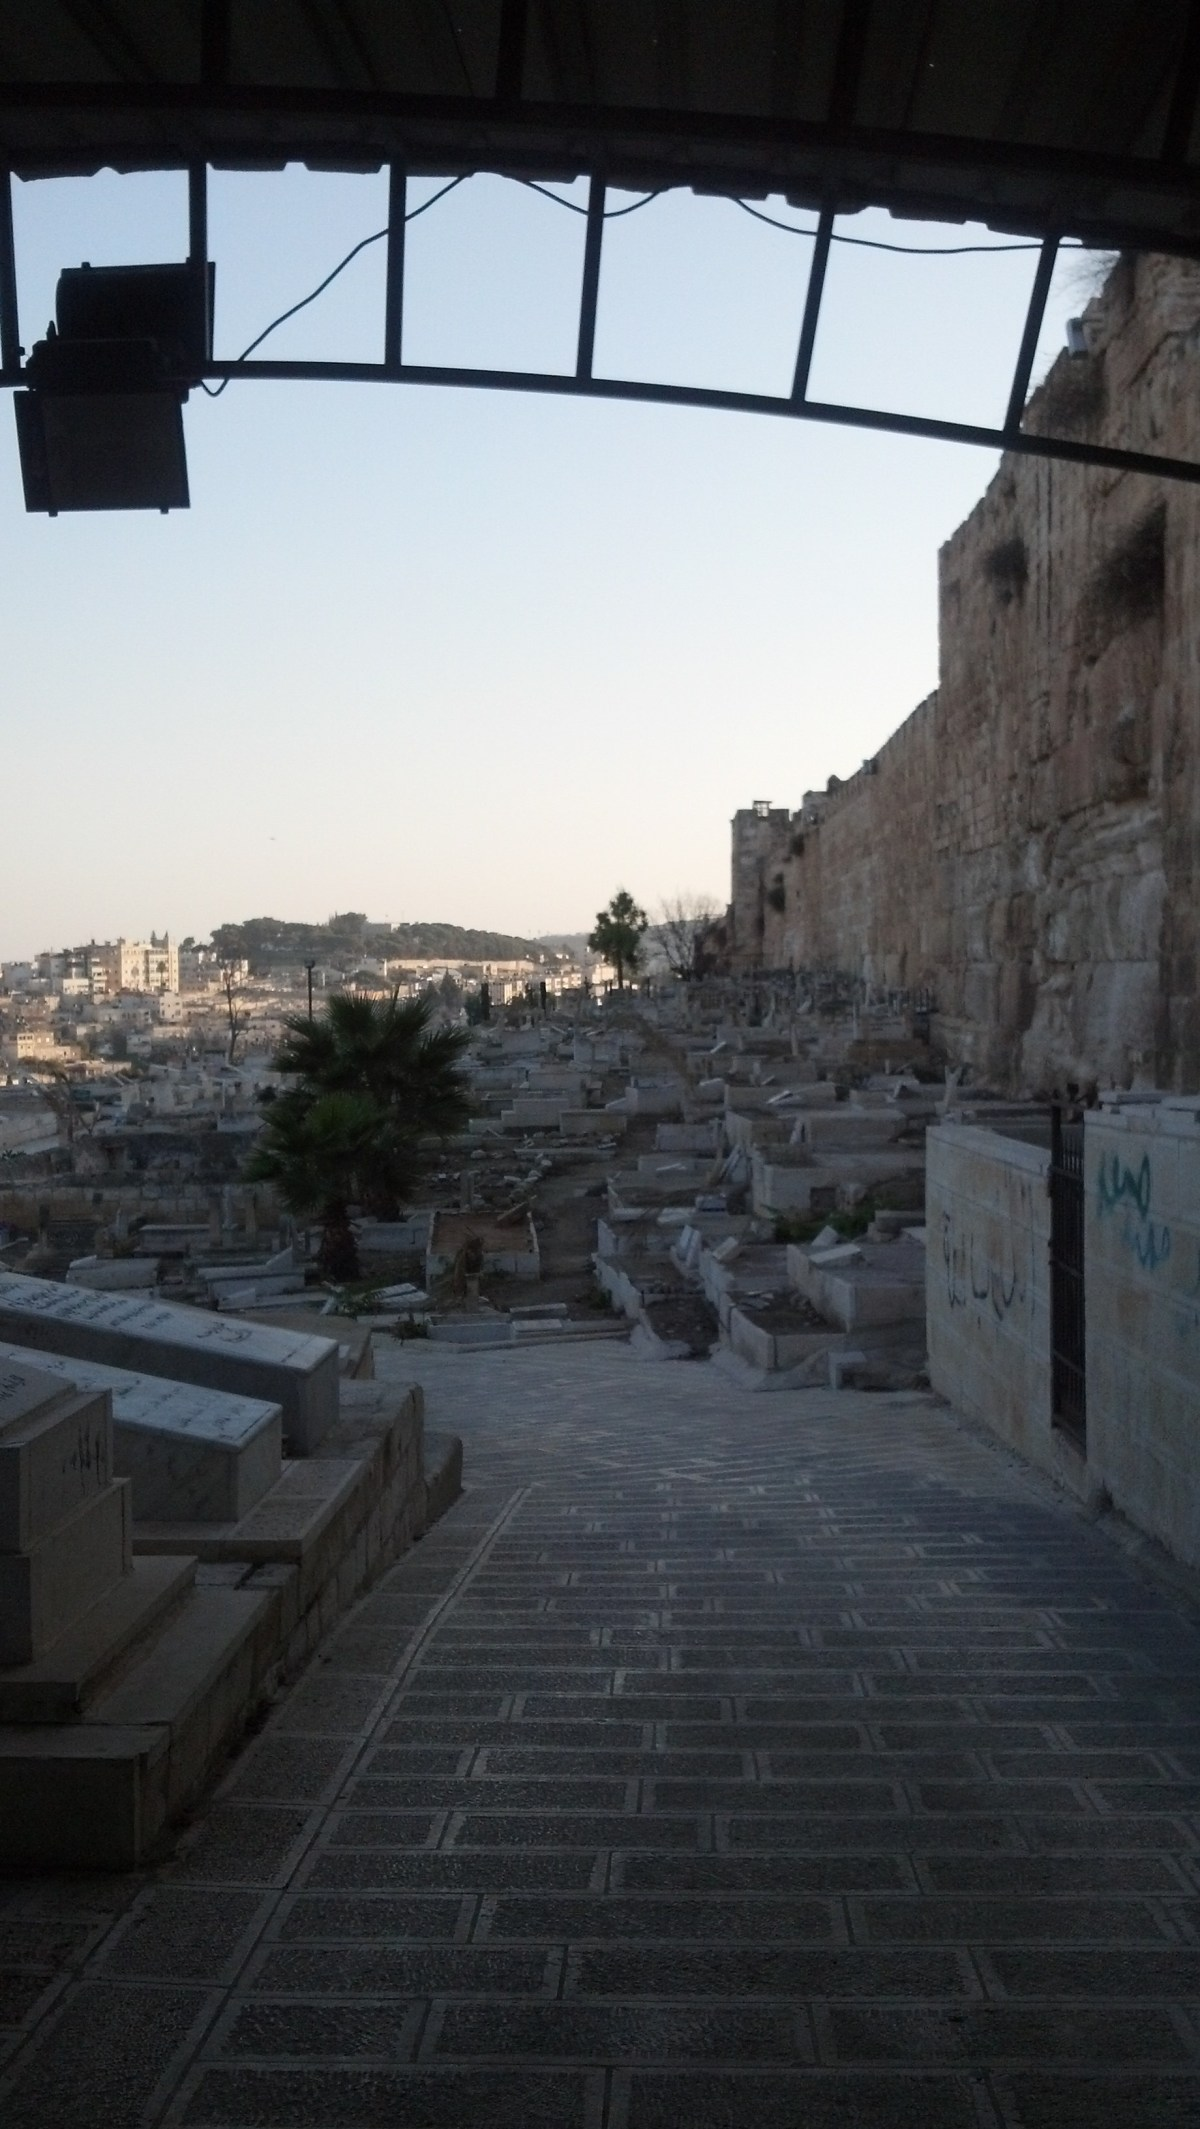 Mount of Olives in Jerusalem, Israel: Photo Gallery